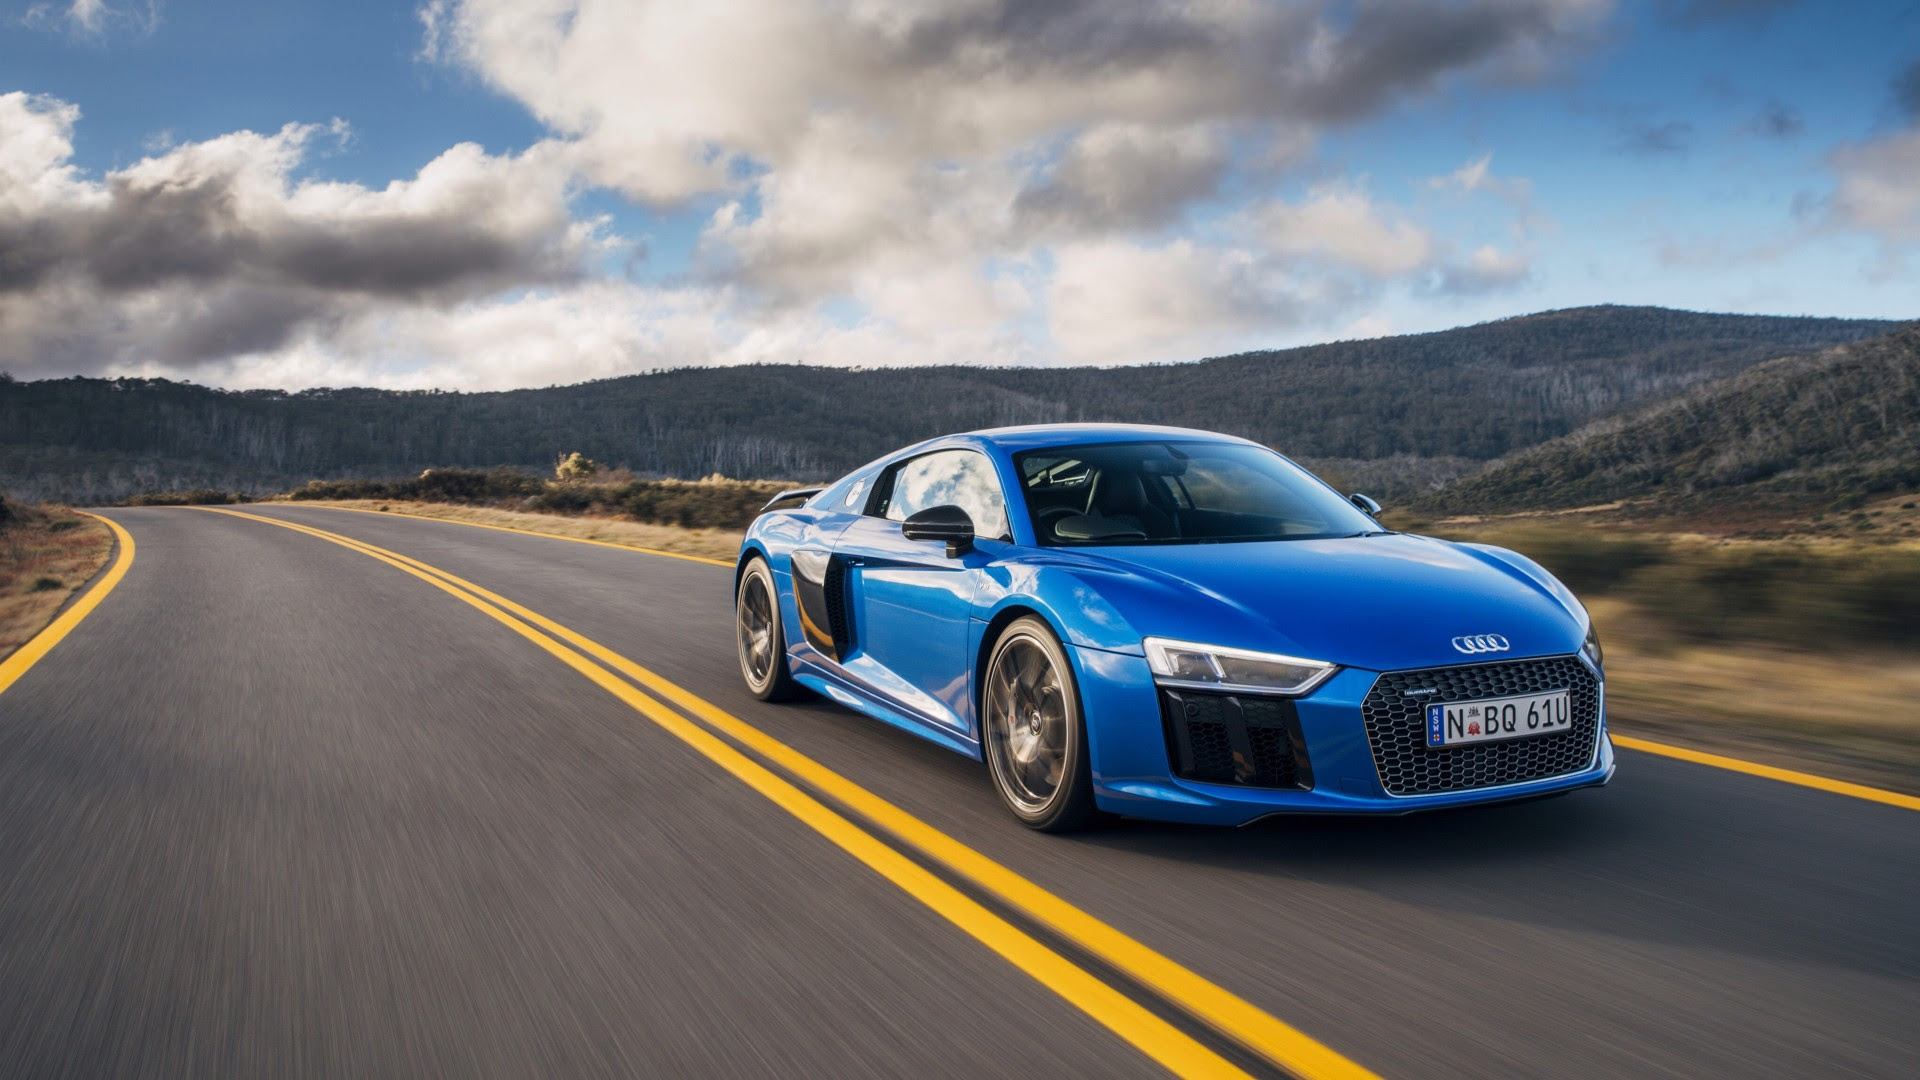 2016 Audi R8 4K Wallpaper  HD Car Wallpapers  ID 6829